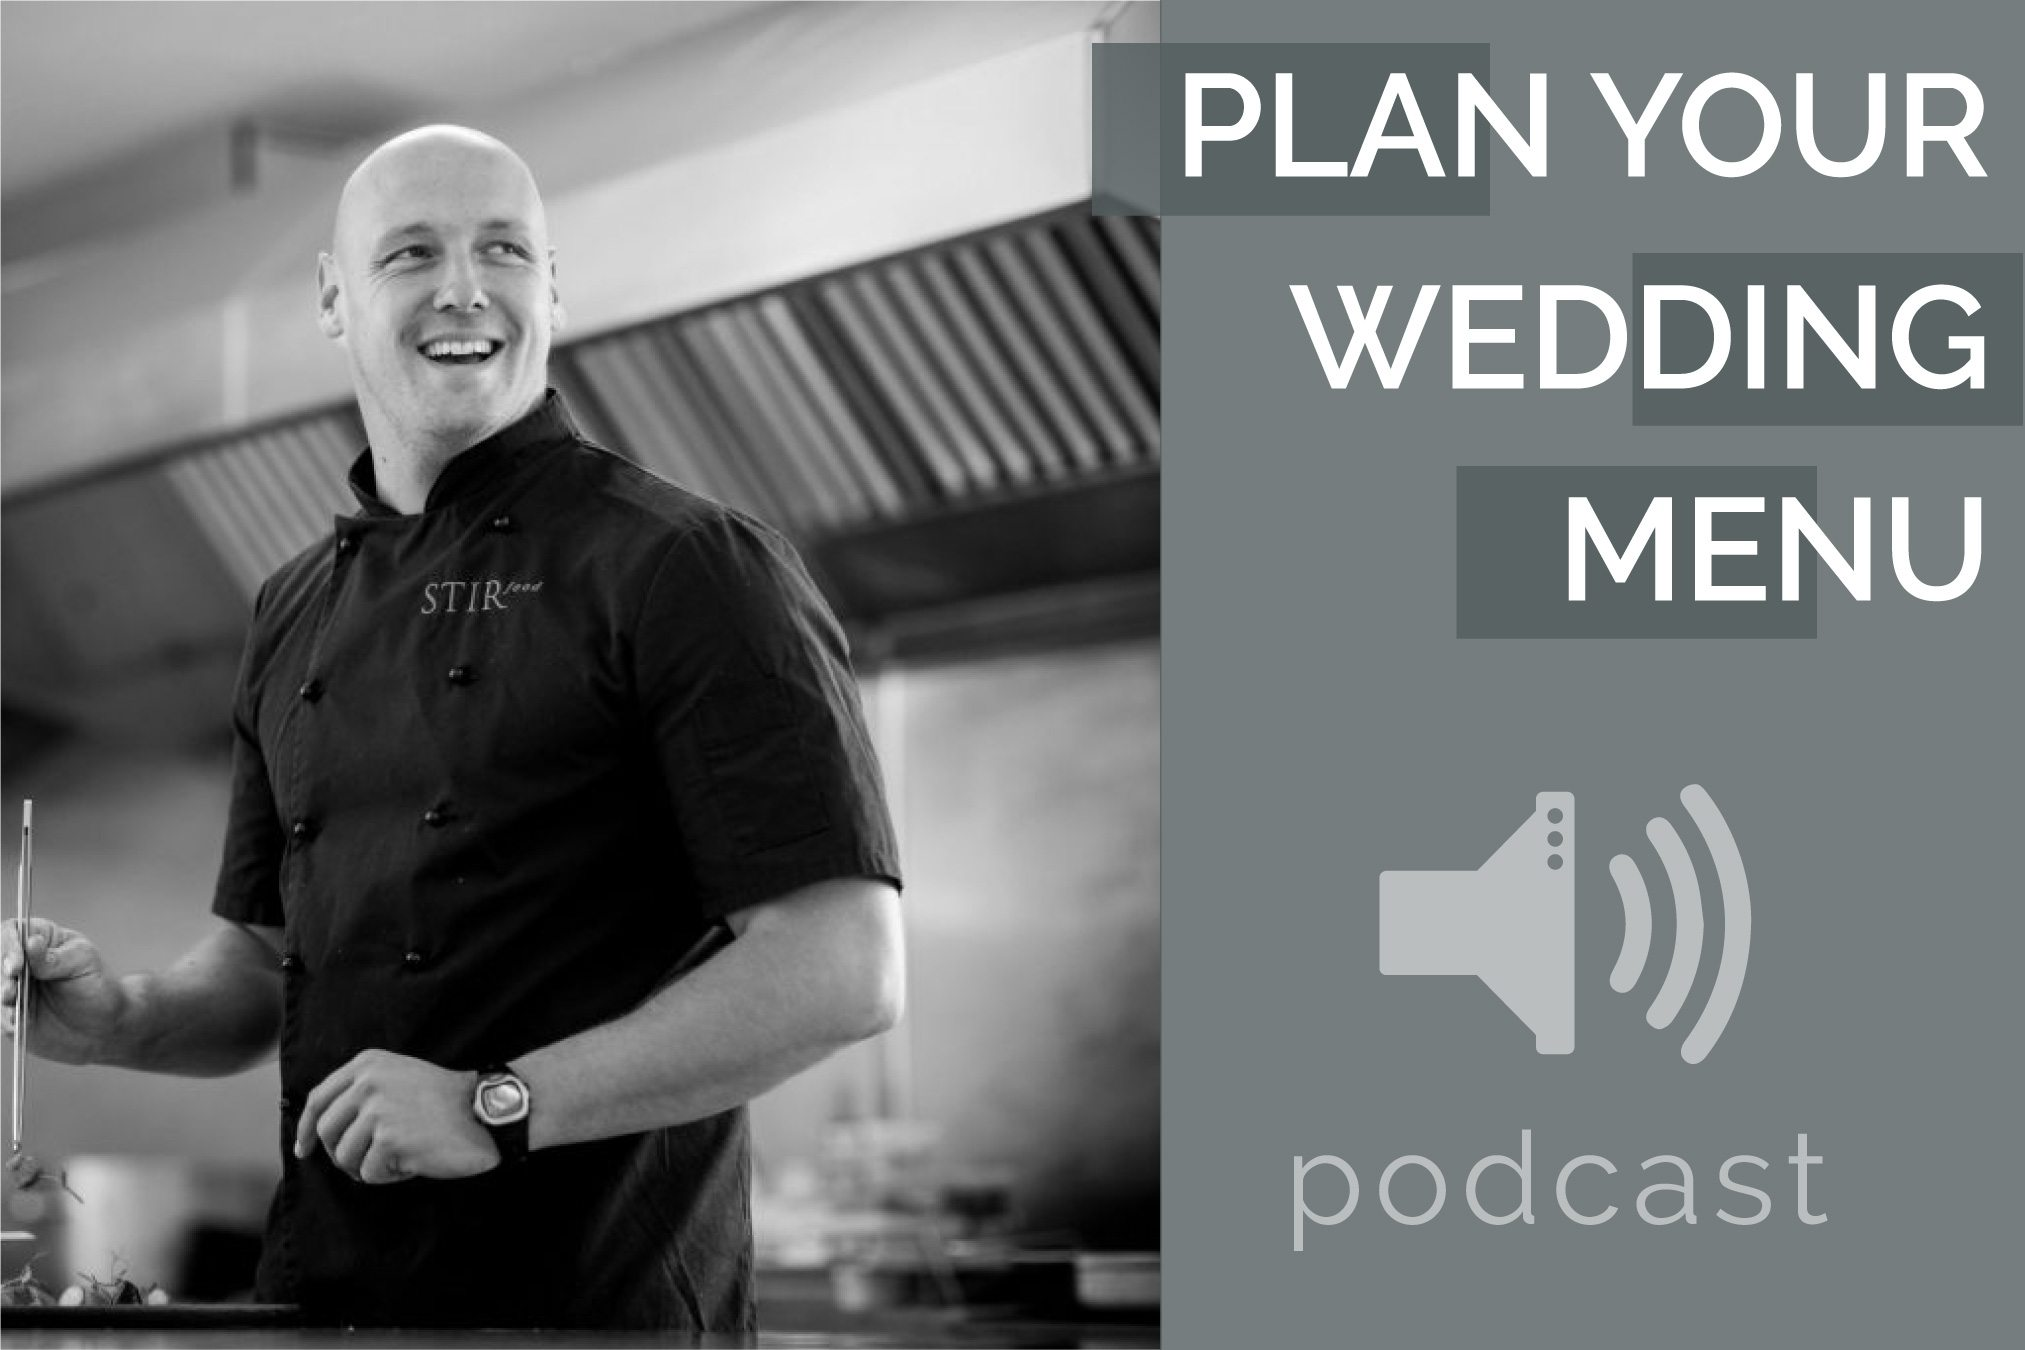 Pink Book Wedding Podcast Episode 3 - Wedding Menu Plan